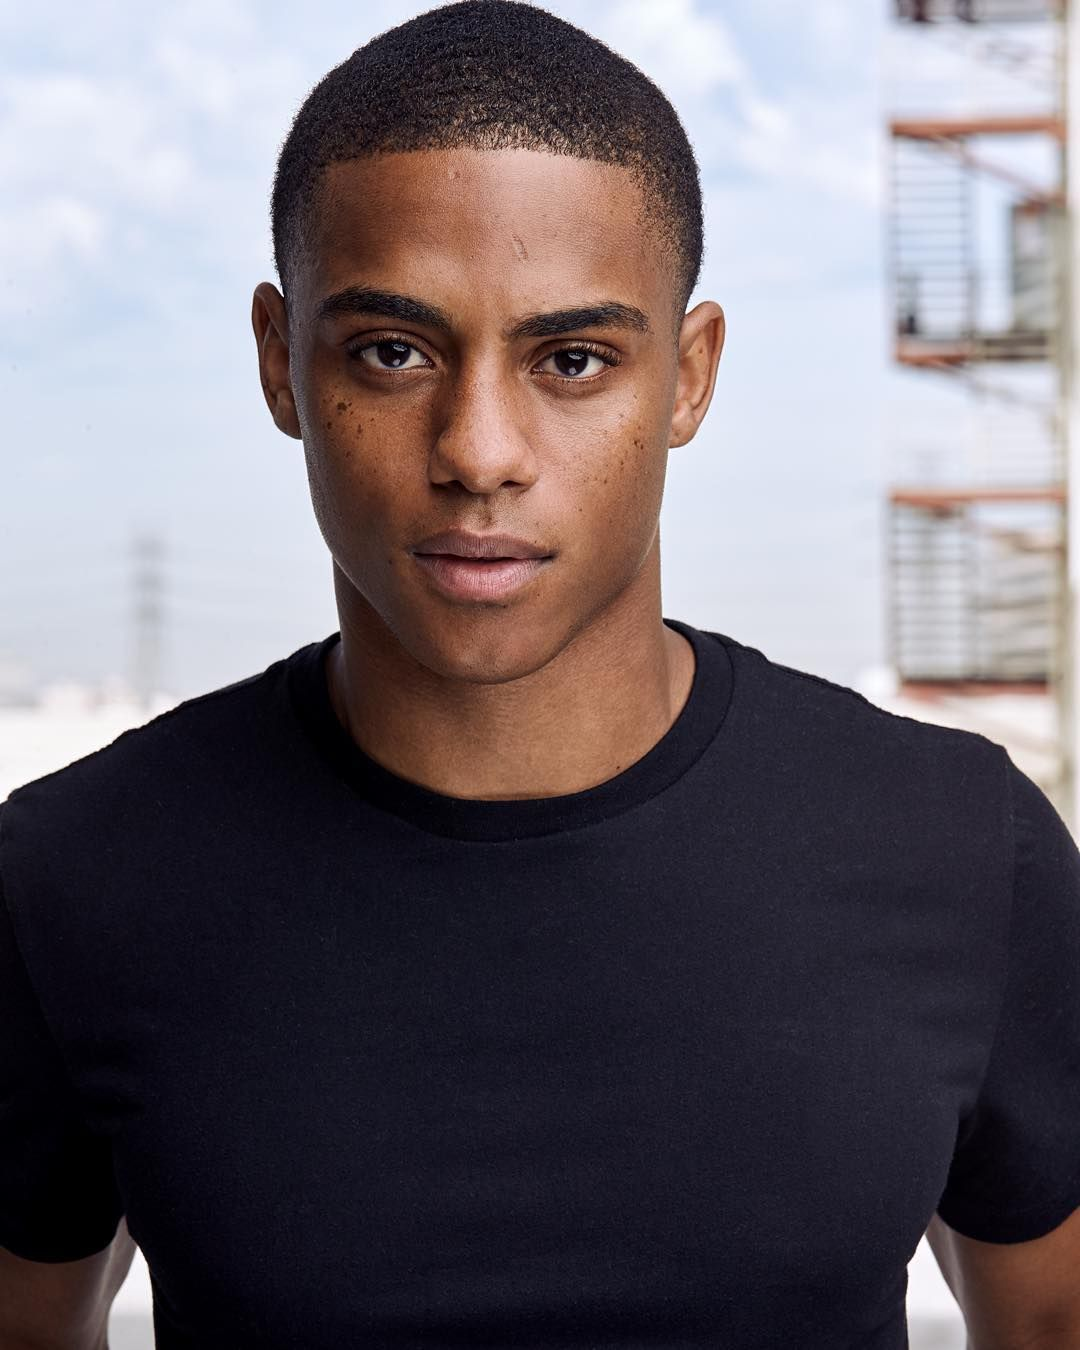 @paulsmithphotography by keithpowers